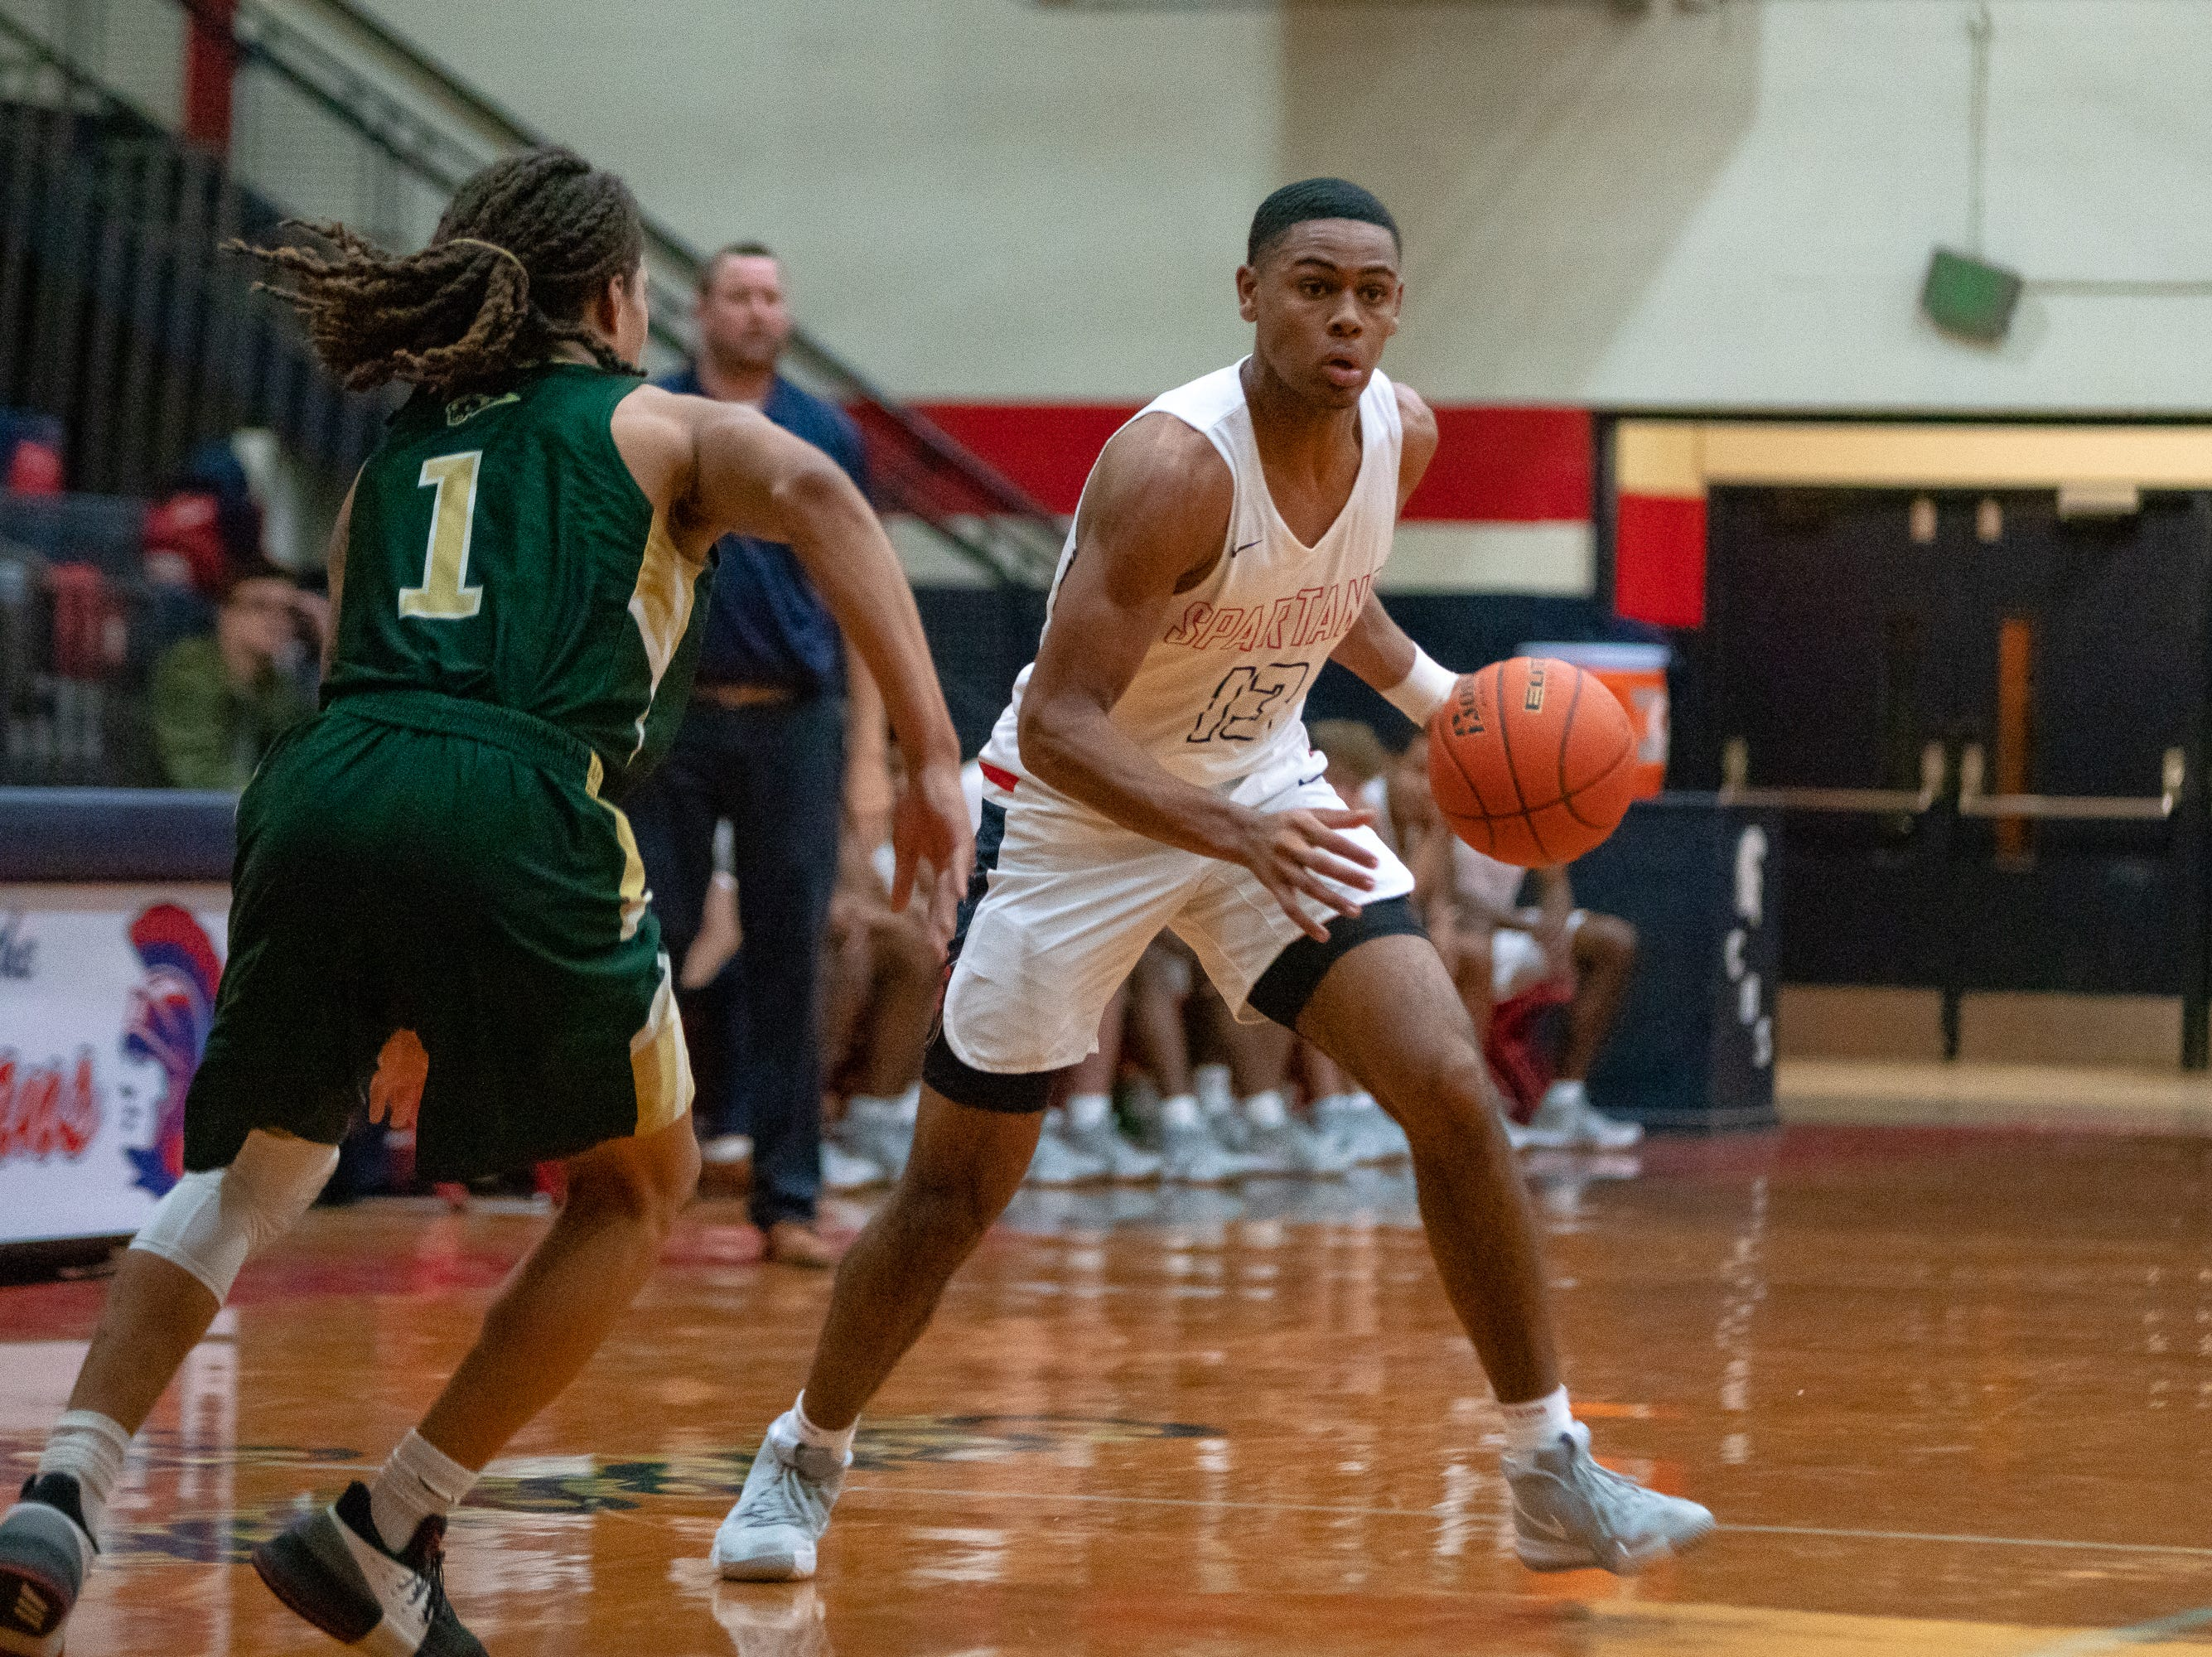 Comeaux's Tré Harris spots an open path to the goal as the Comeaux High Spartans take on the Acadiana High Wreckin' Rams at Comeaux High School on Jan. 25, 2019.